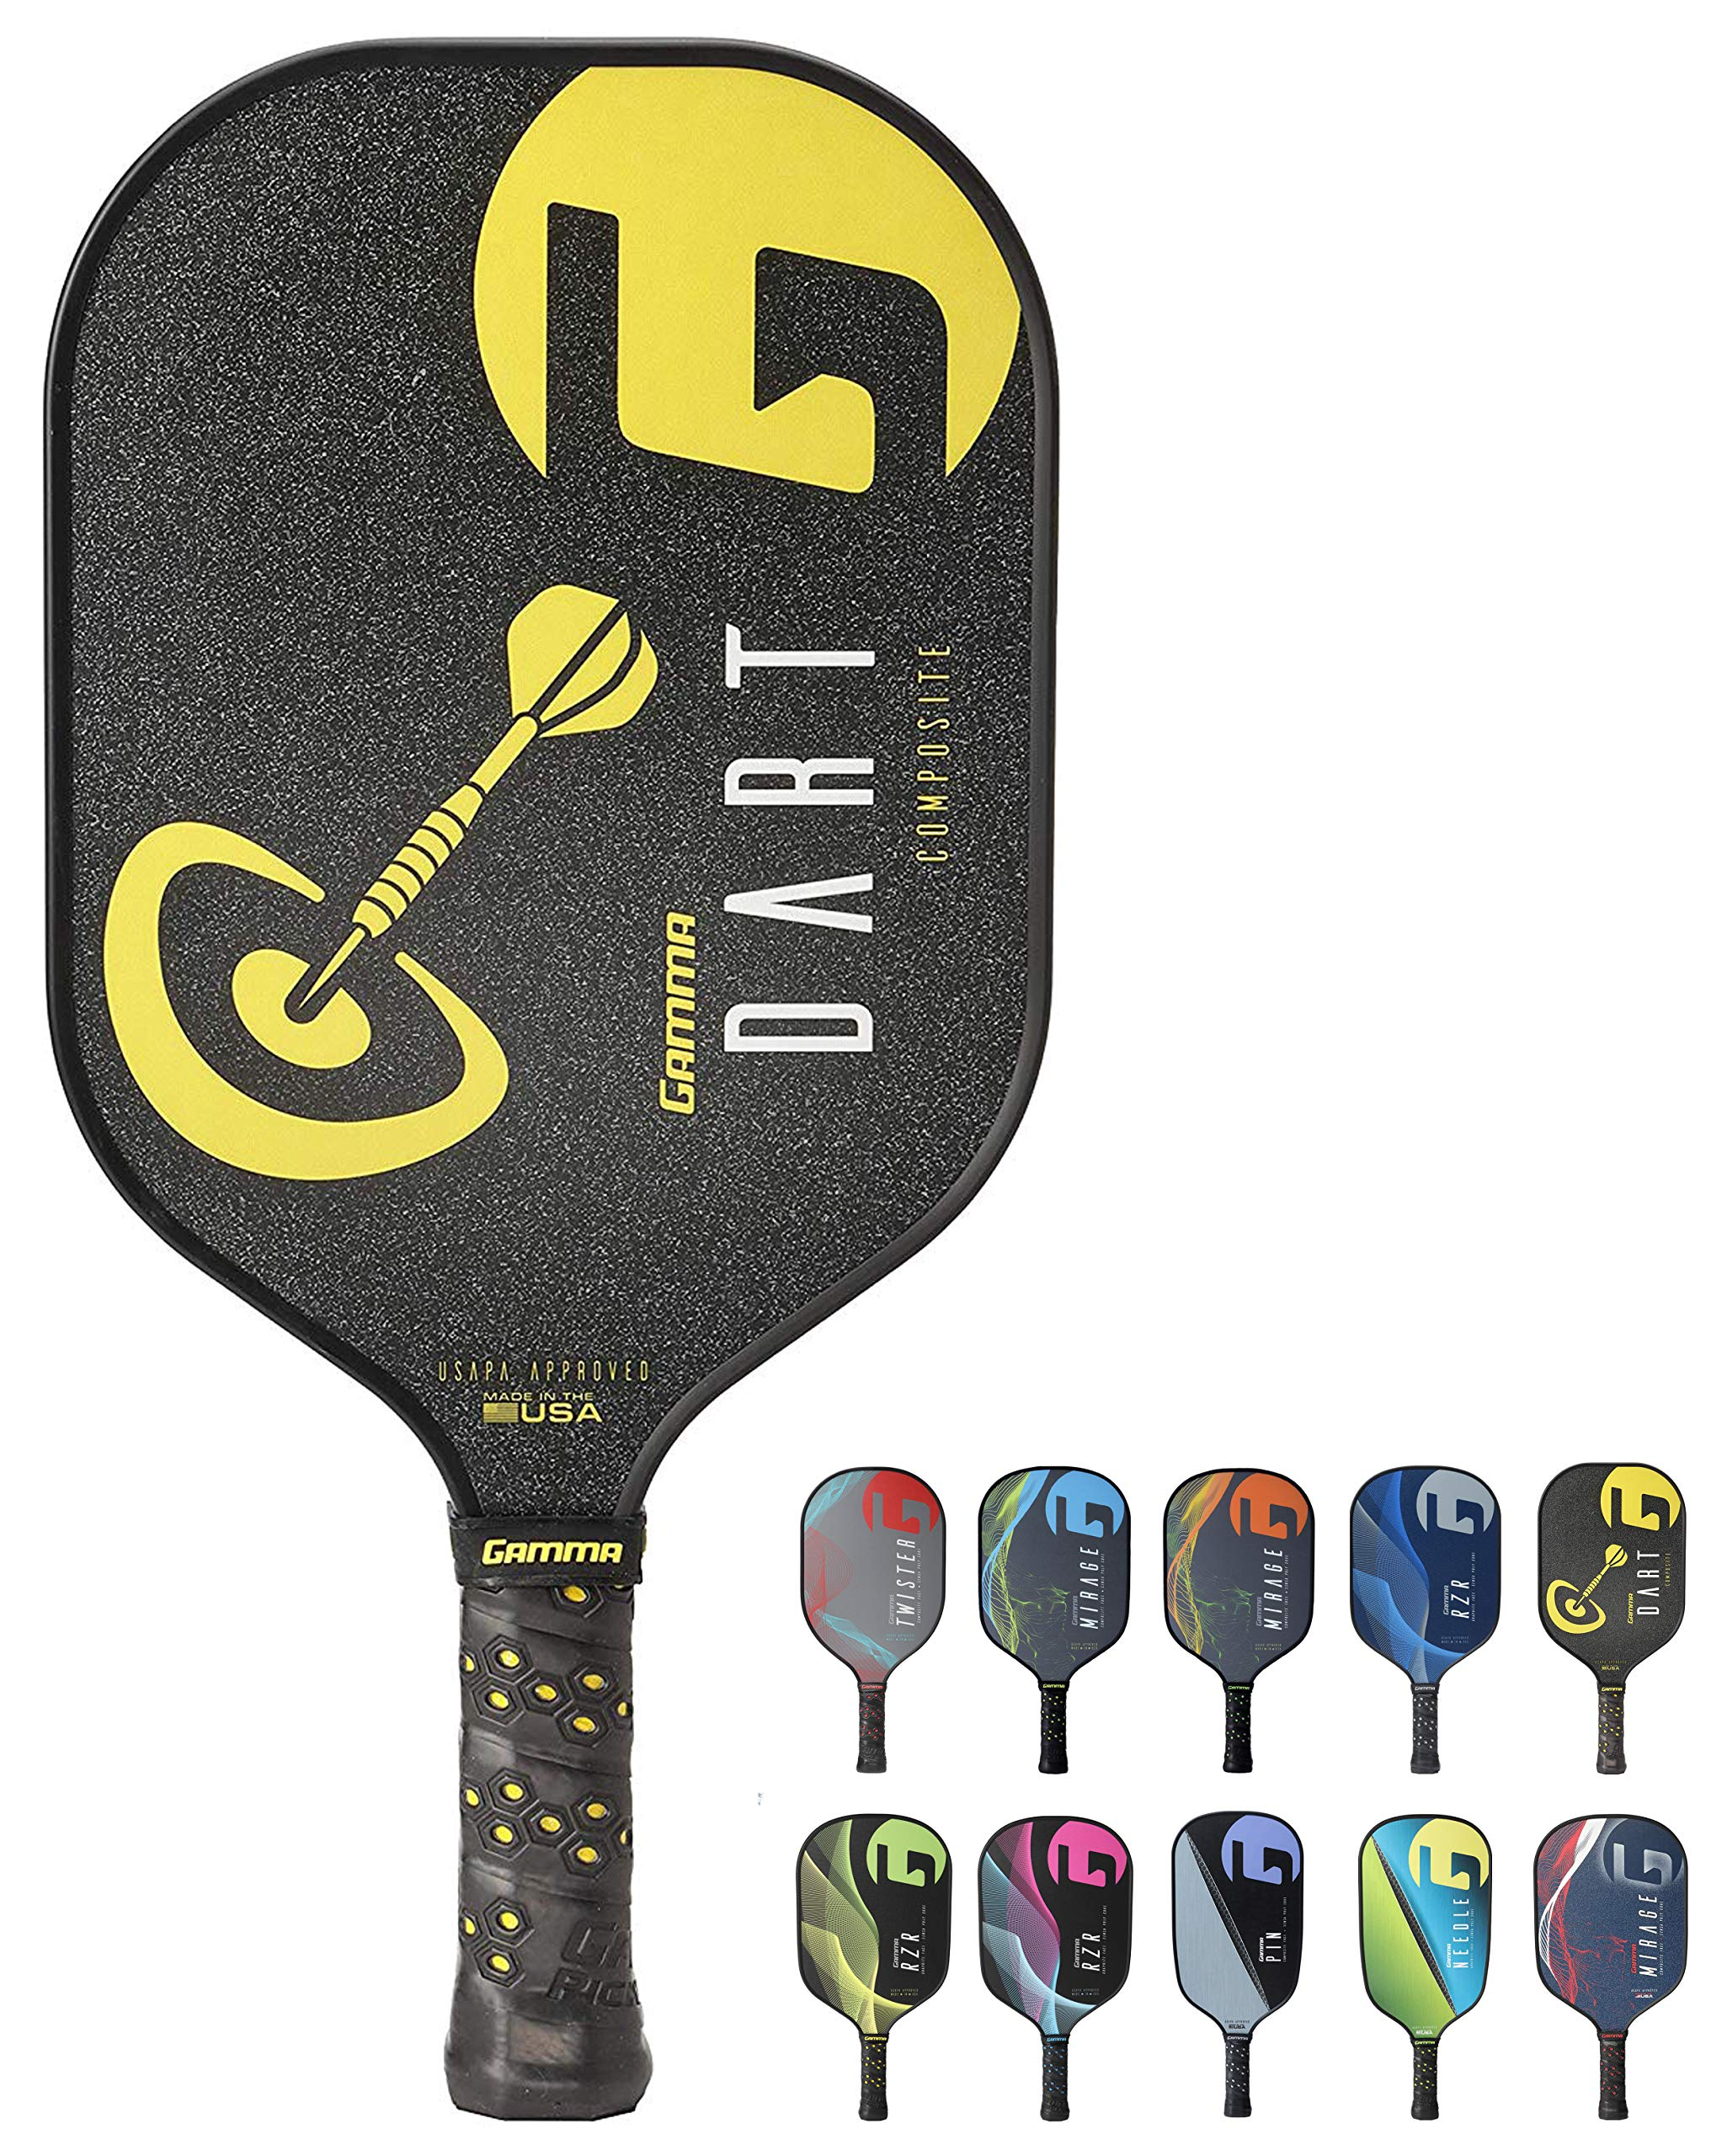 Gamma Dart Composite Pickleball Paddle: Pickle Ball Paddles for Indoor & Outdoor Play - USAPA Approved Racquet for Adults & Kids - Black/Yellow by Gamma (Image #1)